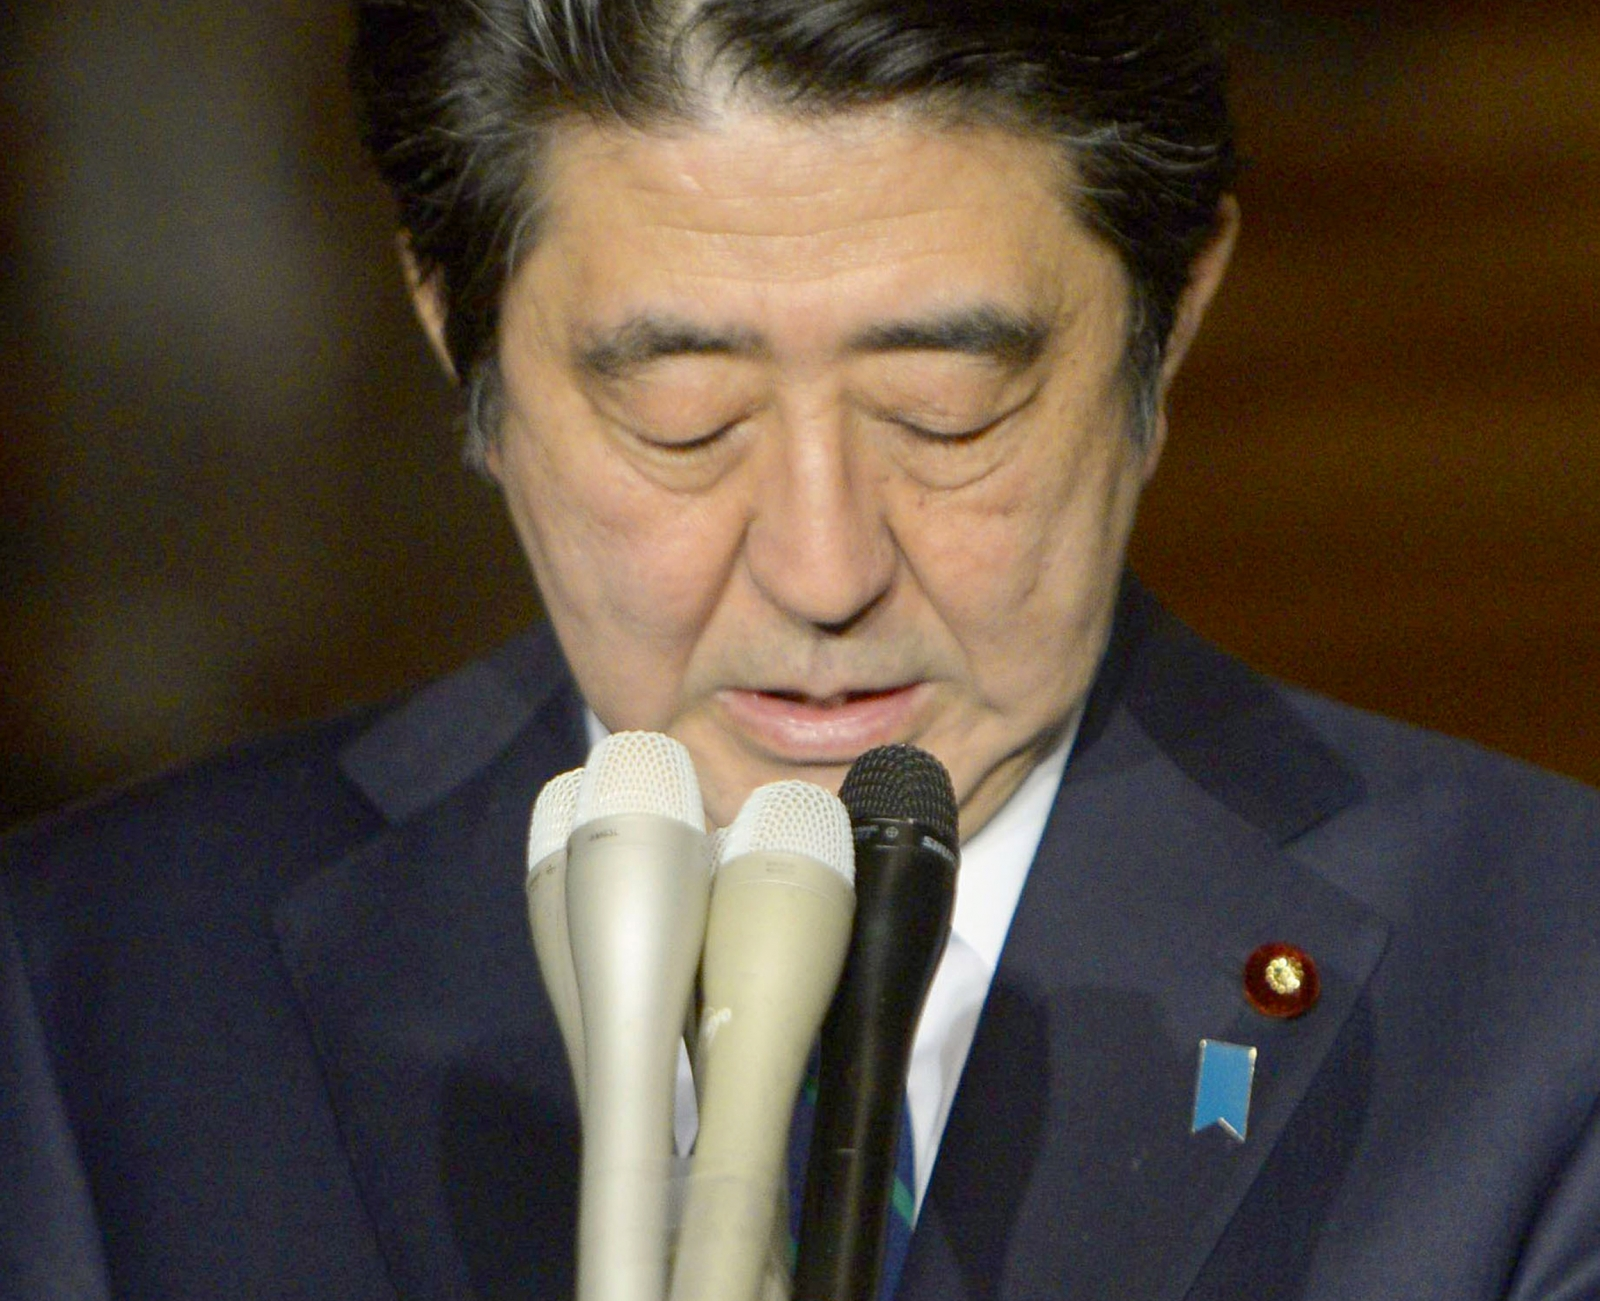 Japan Shinzo Abe WWII statement